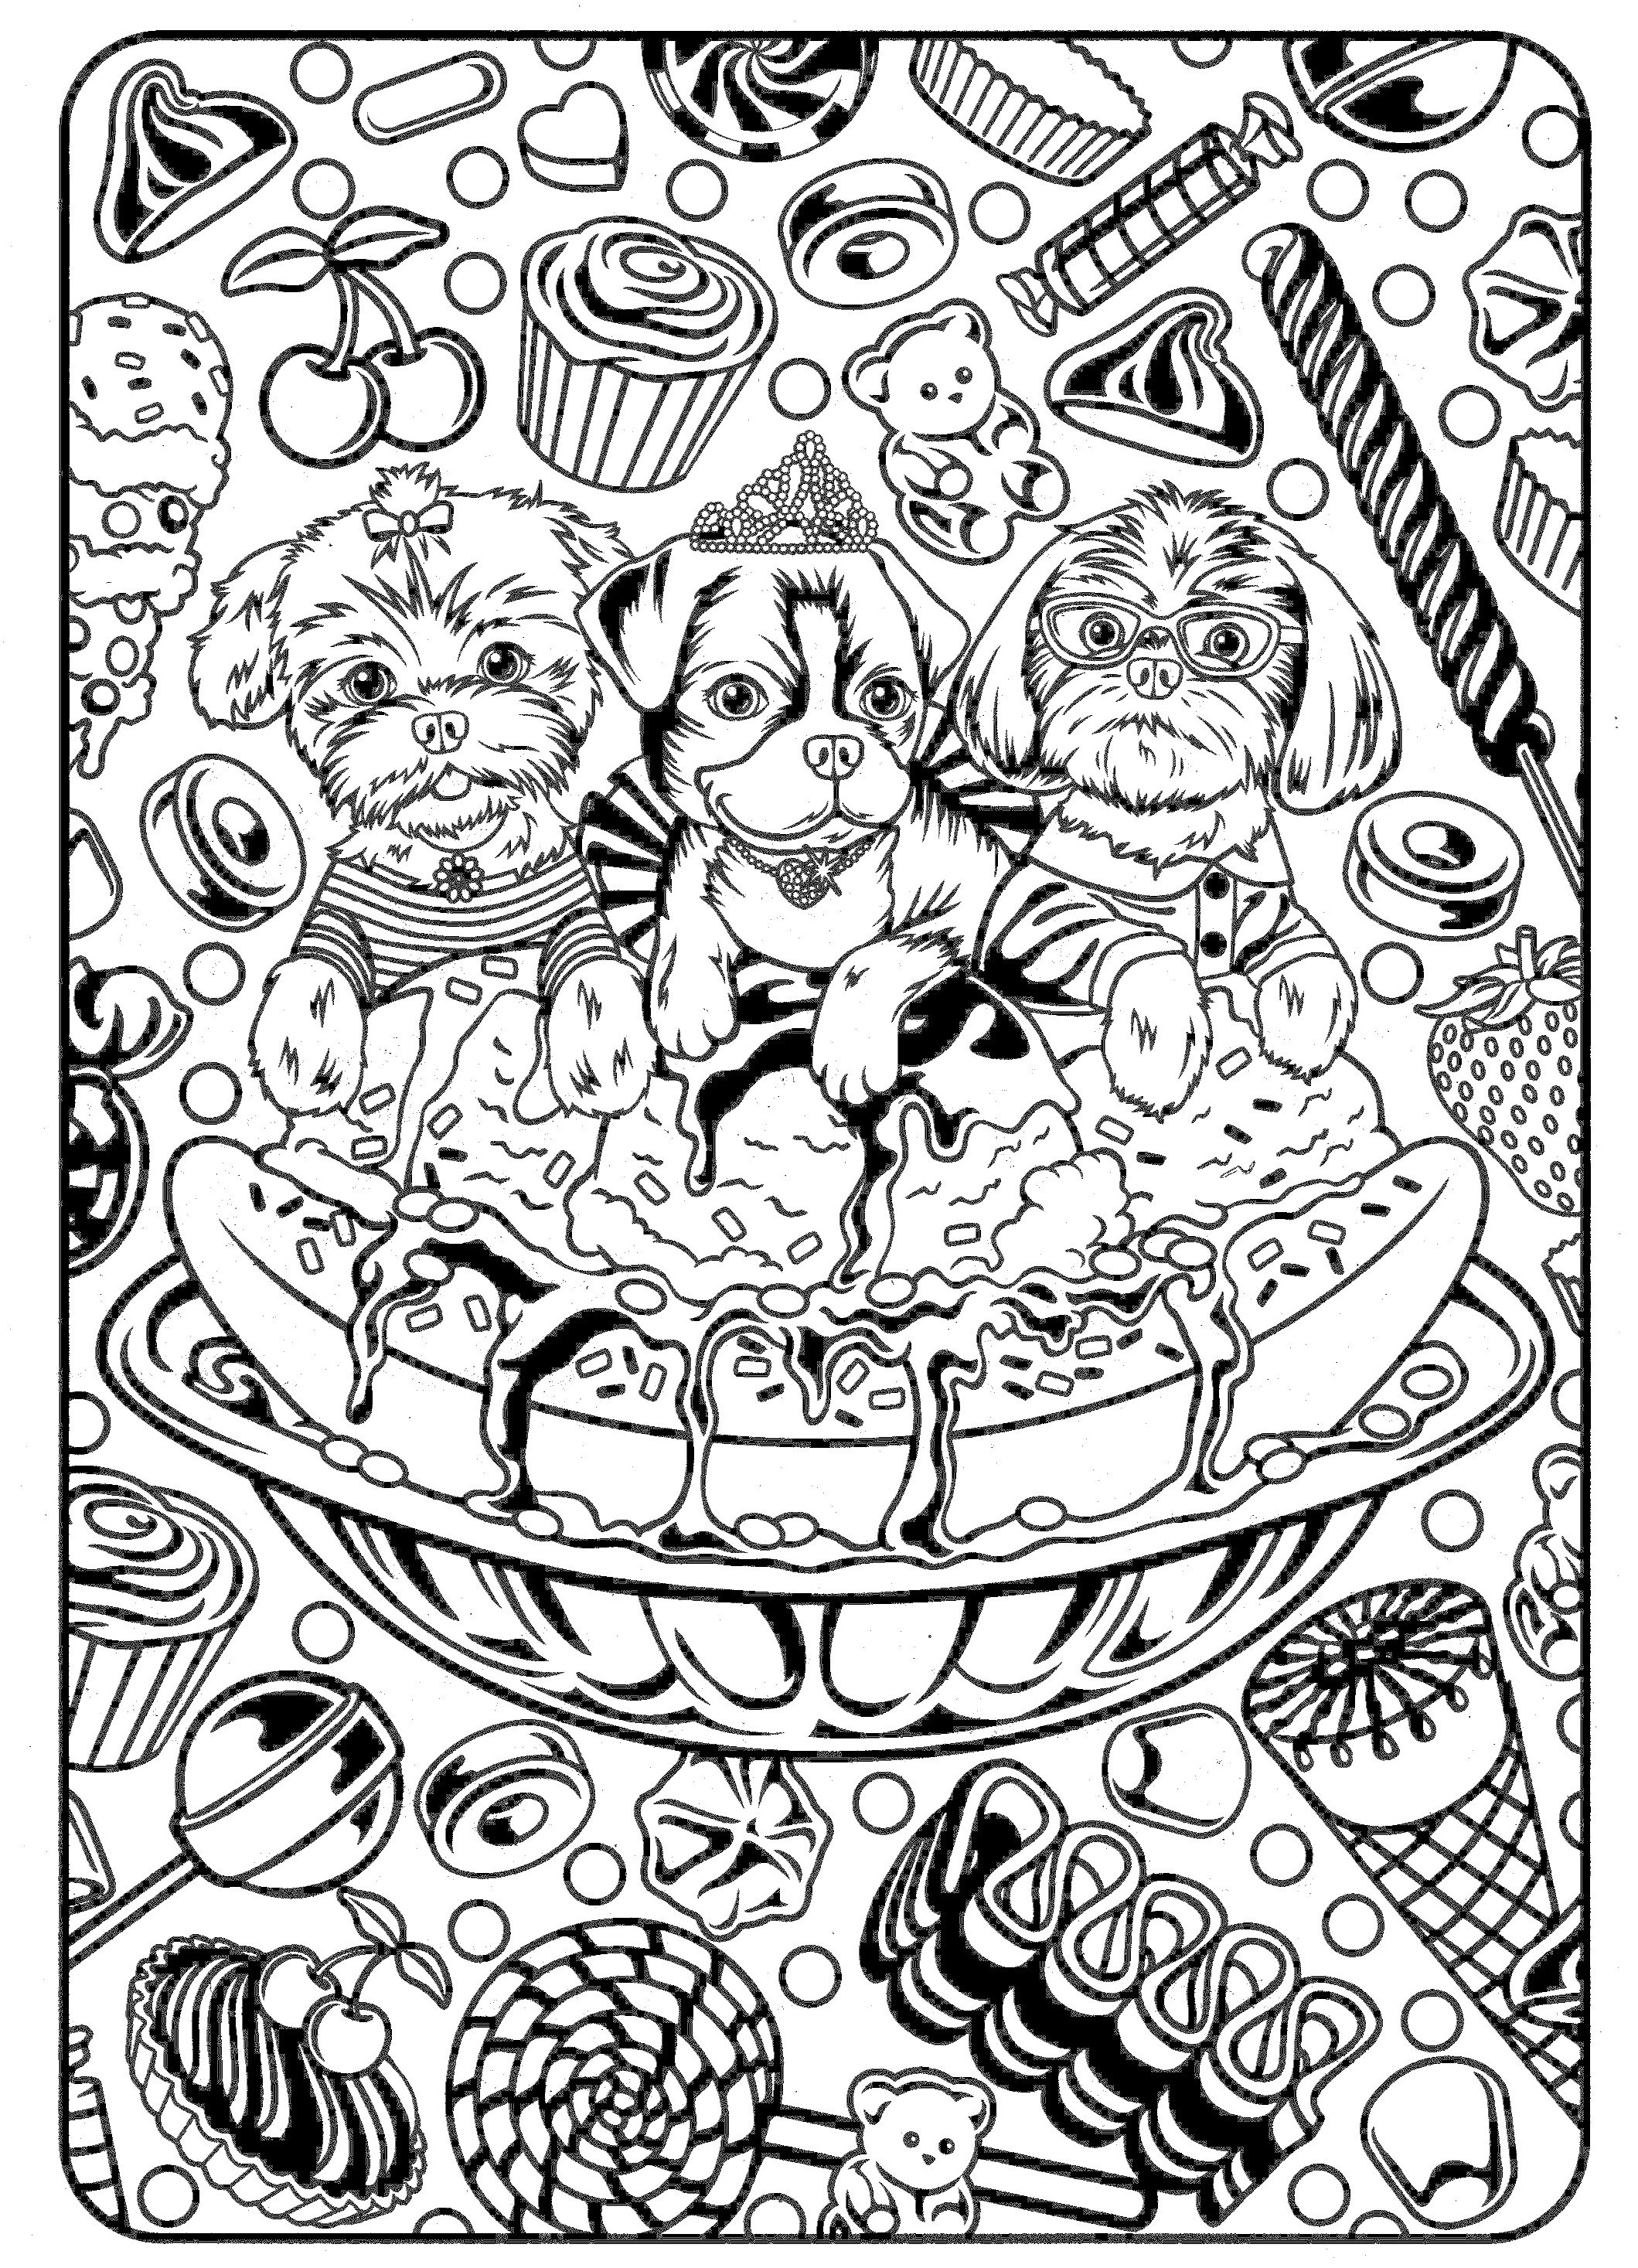 Minion Coloring Pages Free  to Print 11f - Free For kids